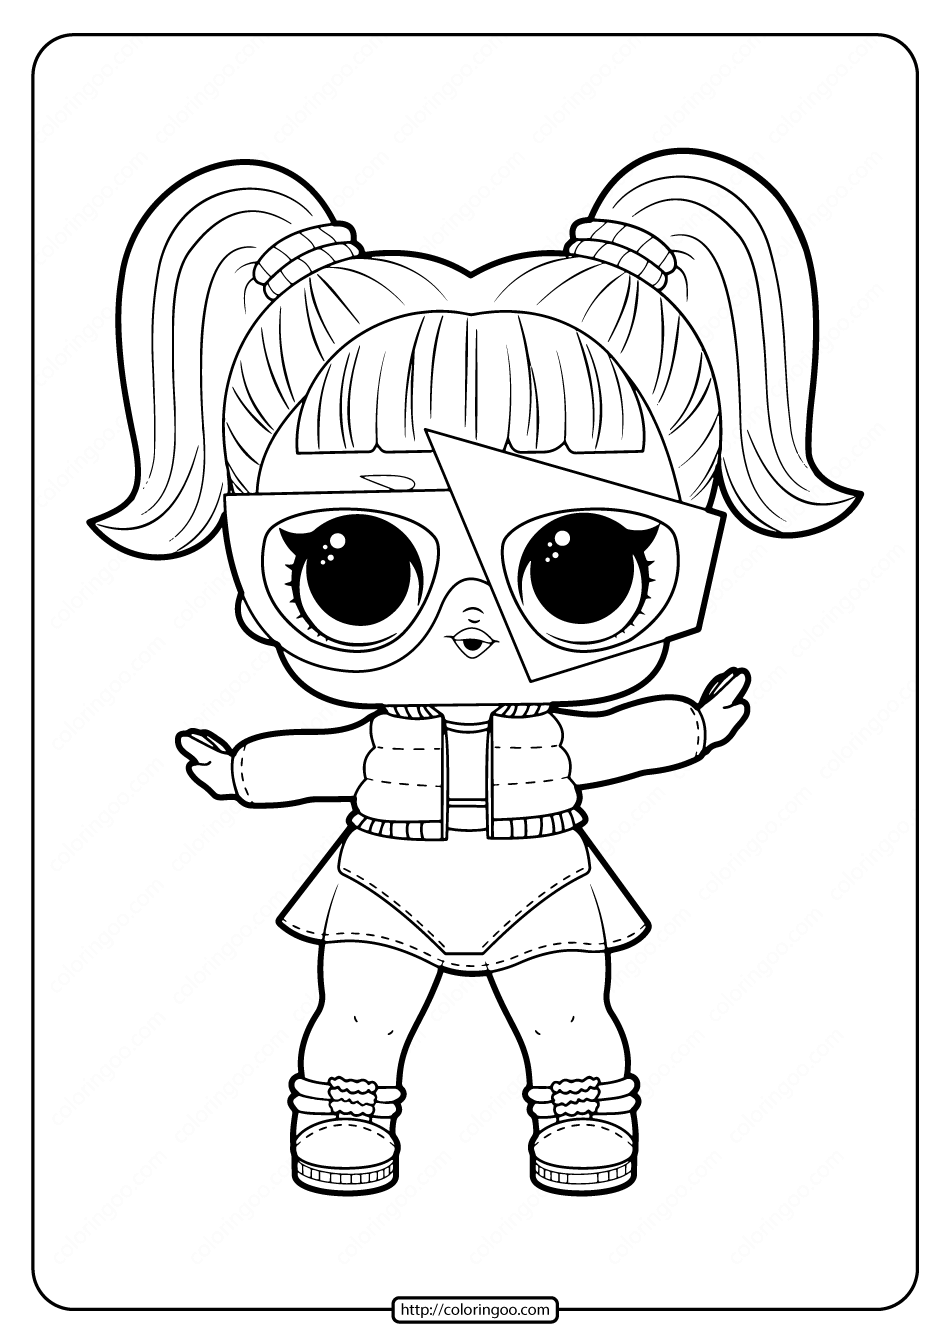 Printable Lol Surprise Glamstronaut Coloring Pages Coloring Pages Cute Coloring Pages Free Printable Coloring Pages